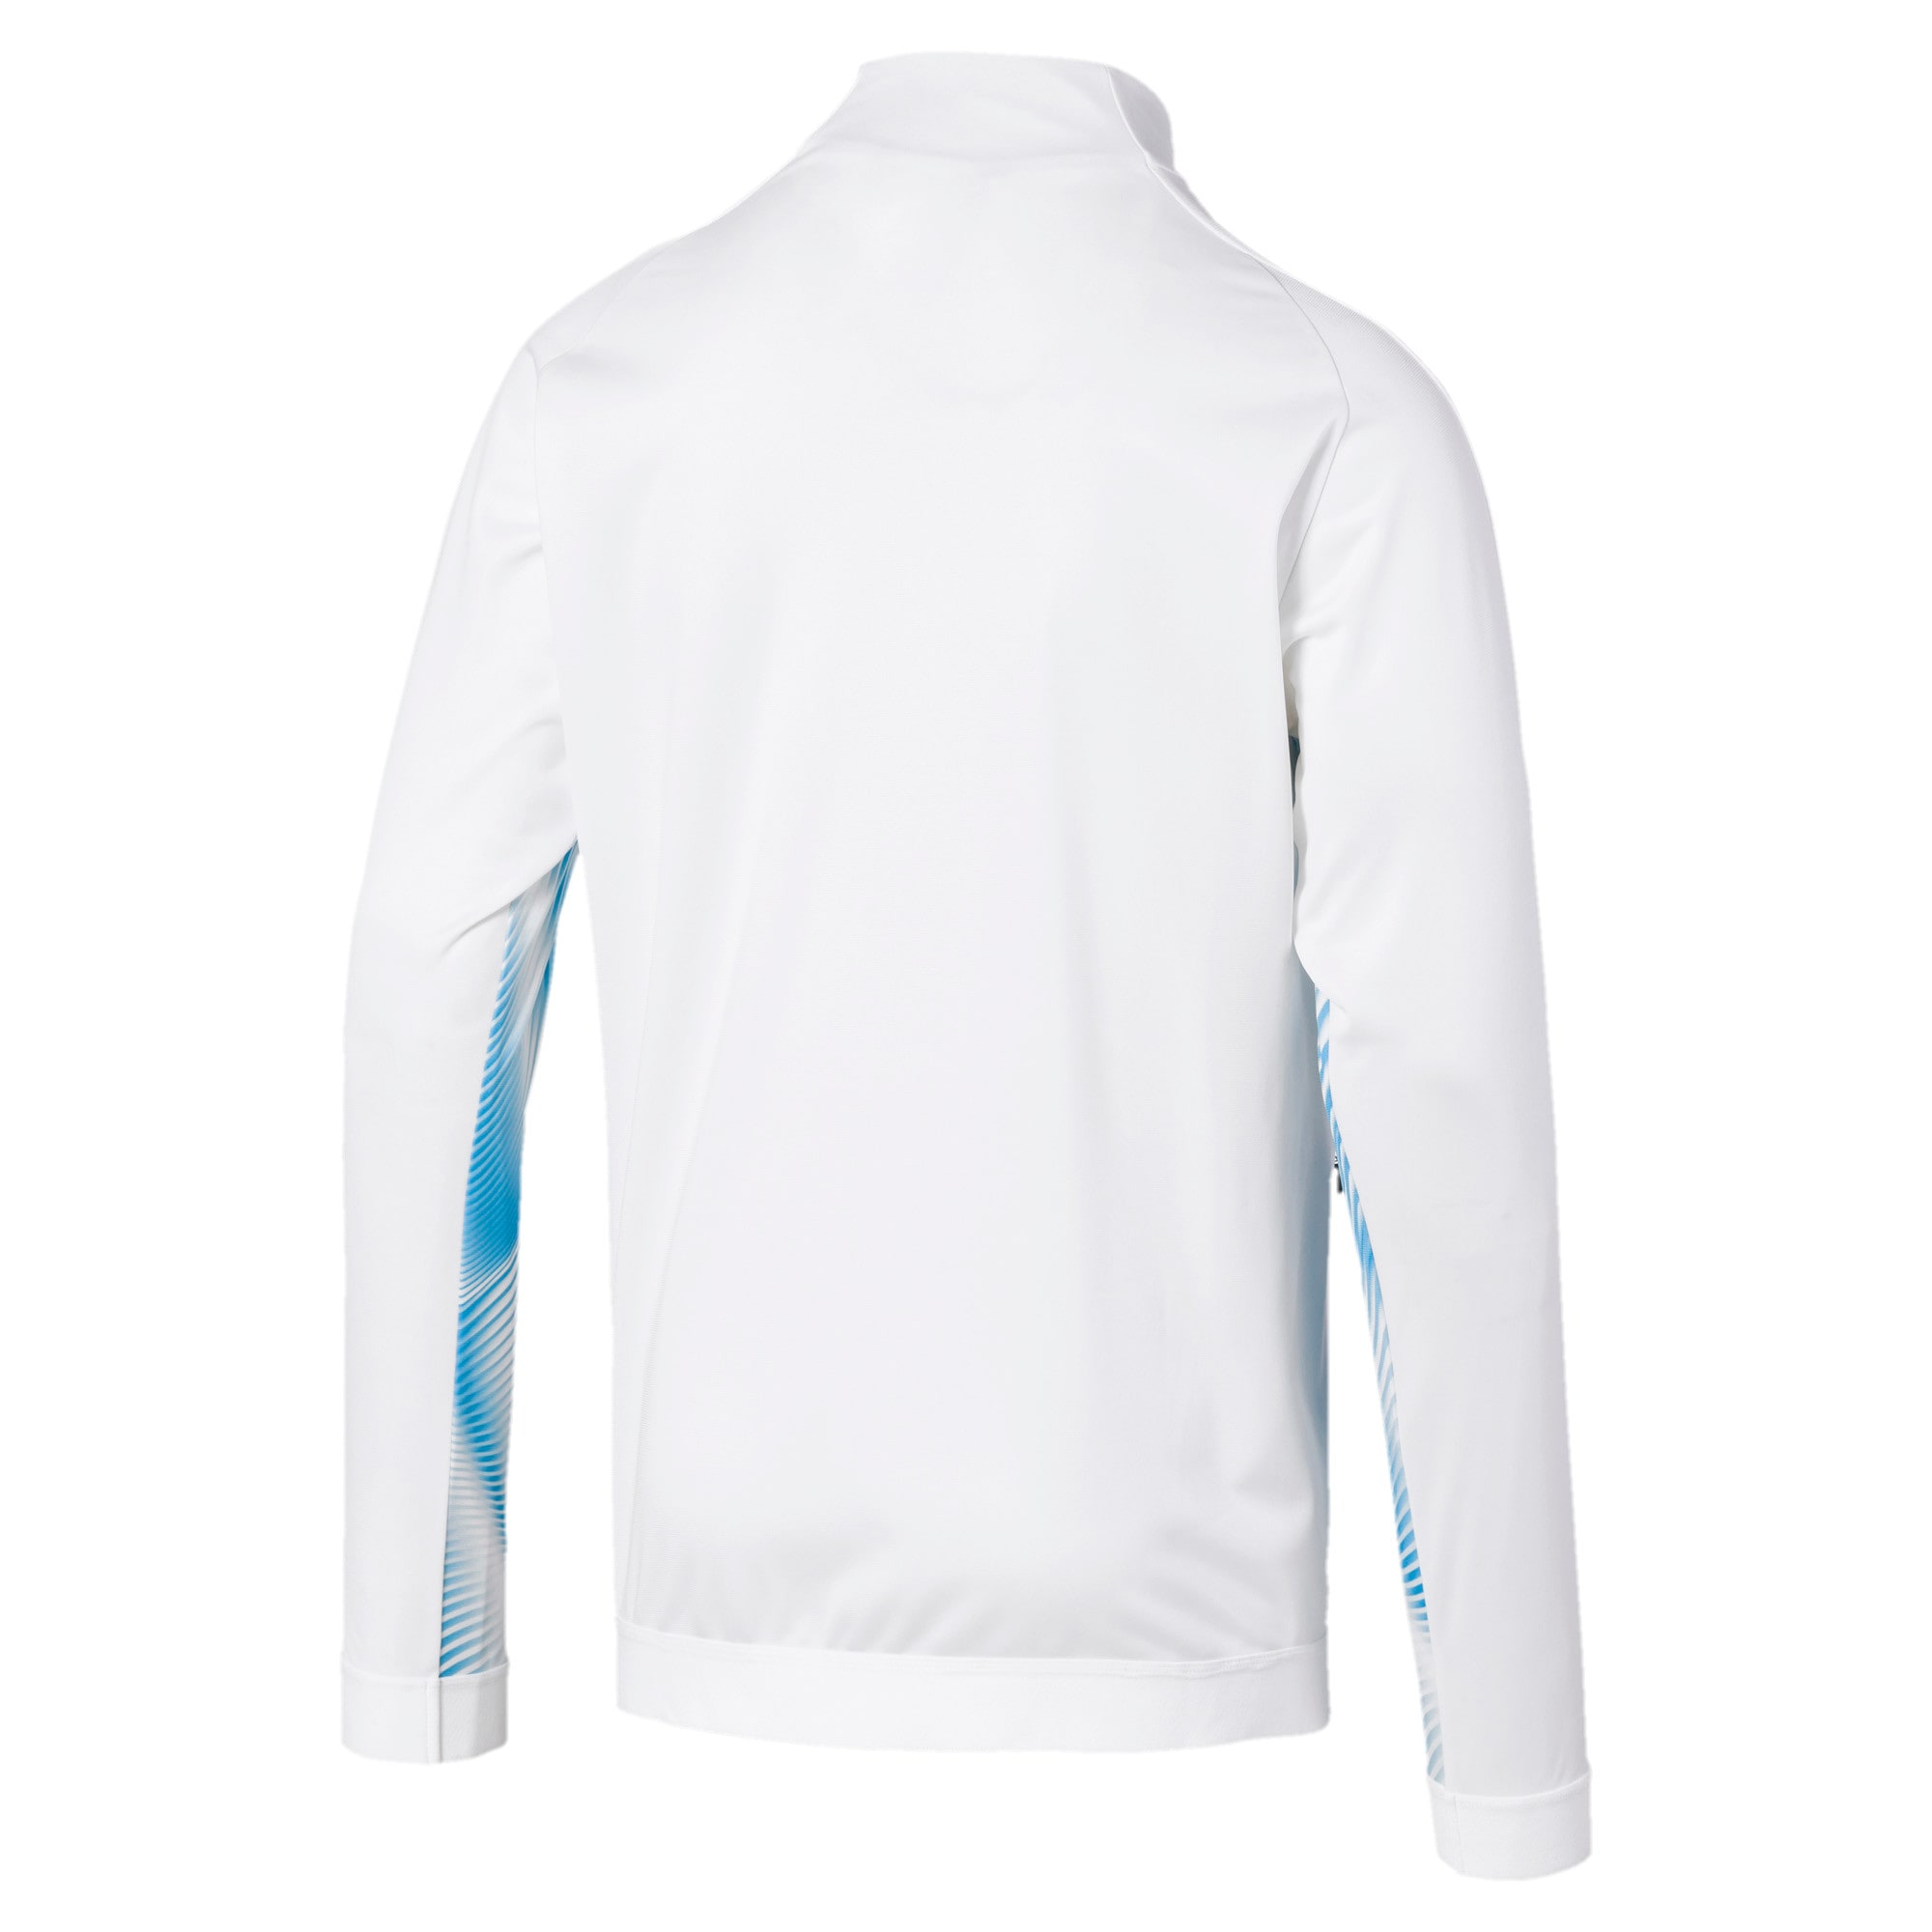 Thumbnail 2 of Olympique de Marseille Stadium Men's Jacket, Puma White-Bleu Azur, medium